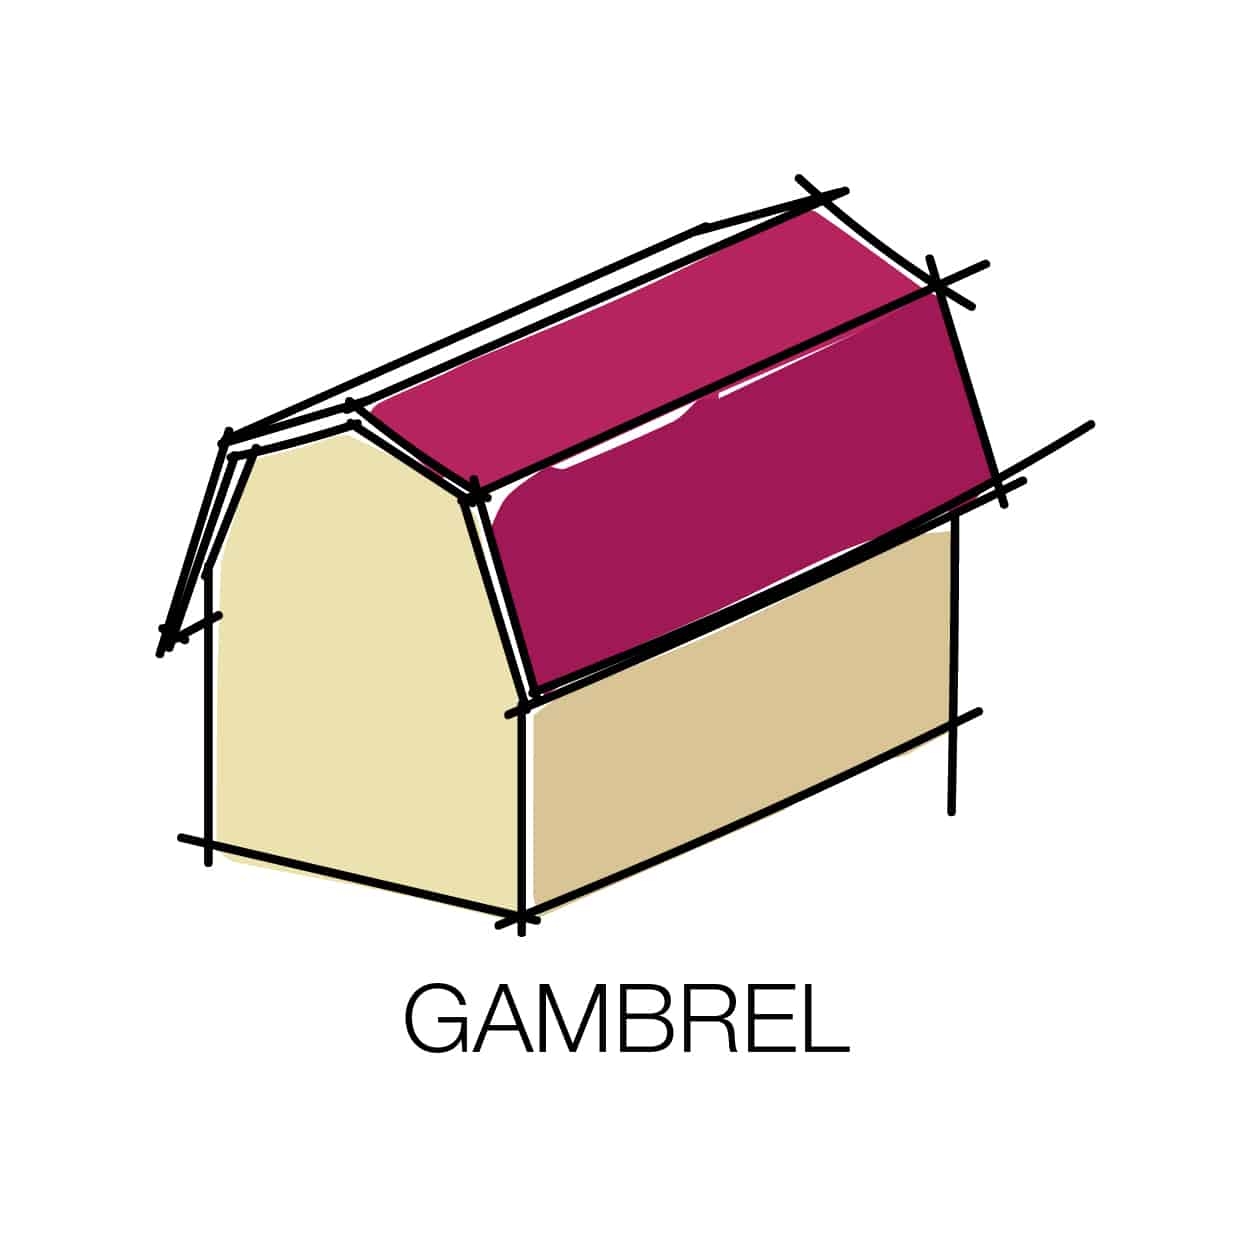 Learn about the 20 most popular roof types for your future for Gambrel gable